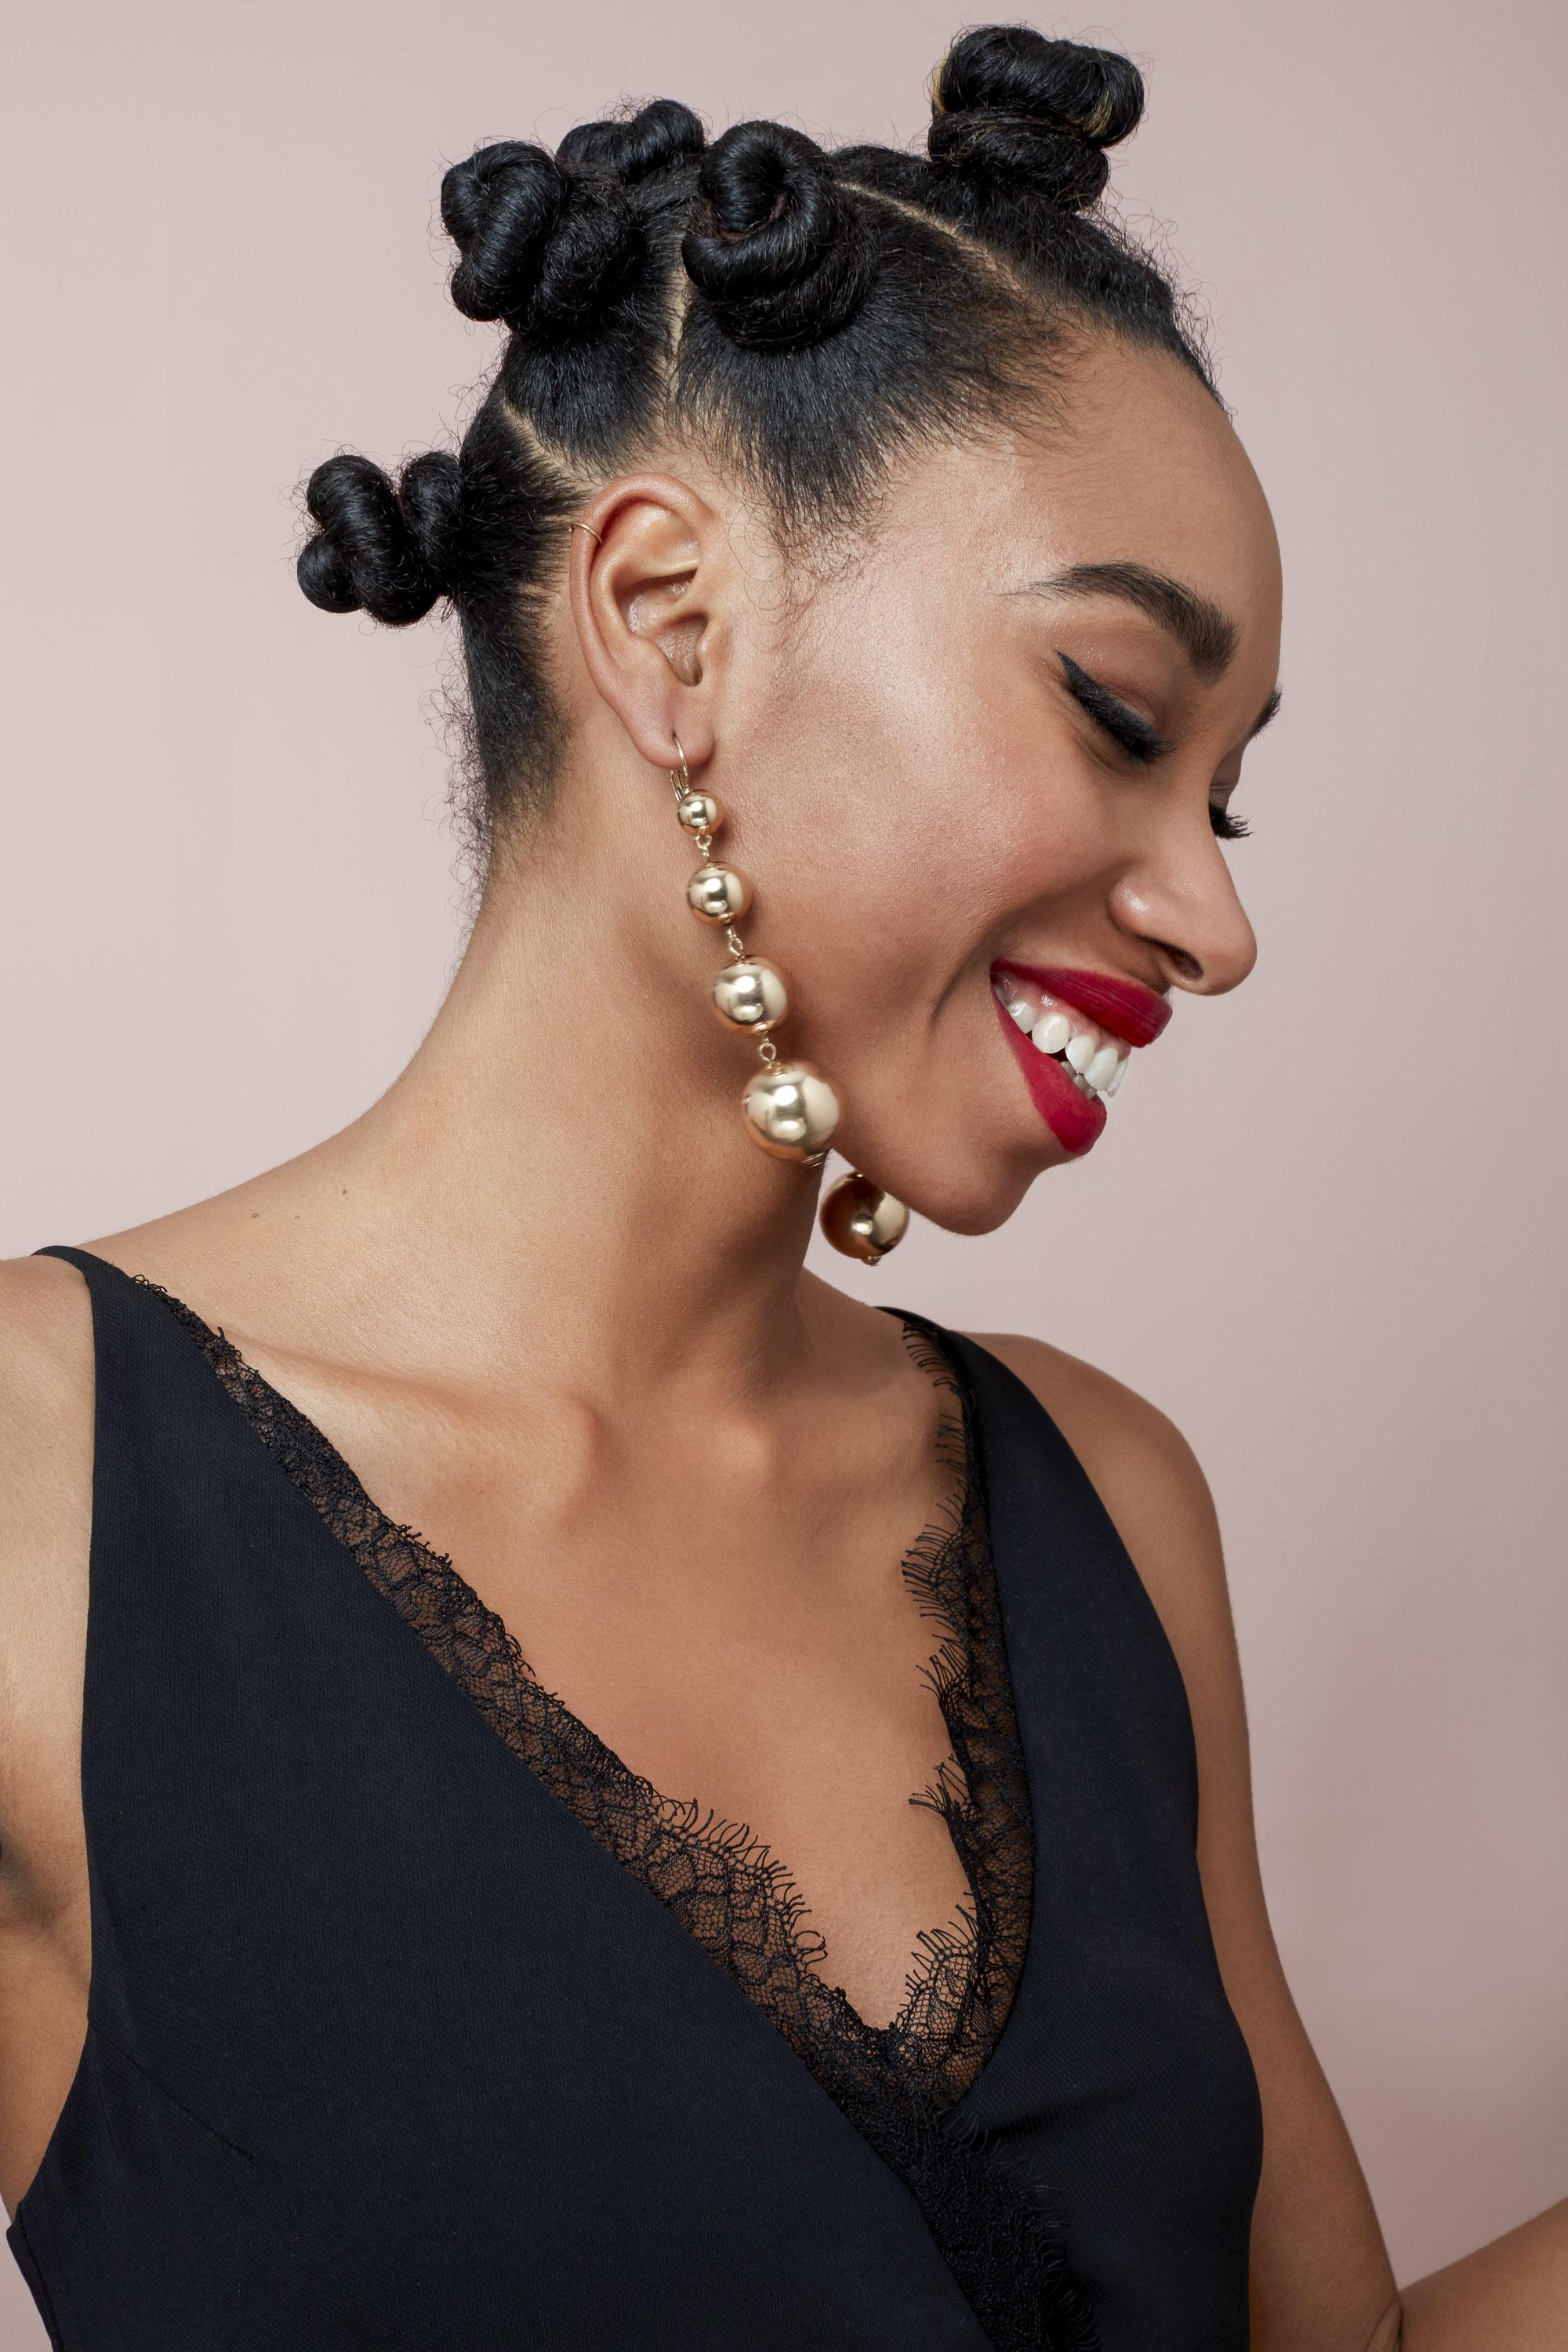 Natural hairstyles for Valentine's Day: Side shot of woman with bantu knots, wearing satin dress with gold earrings in the studio